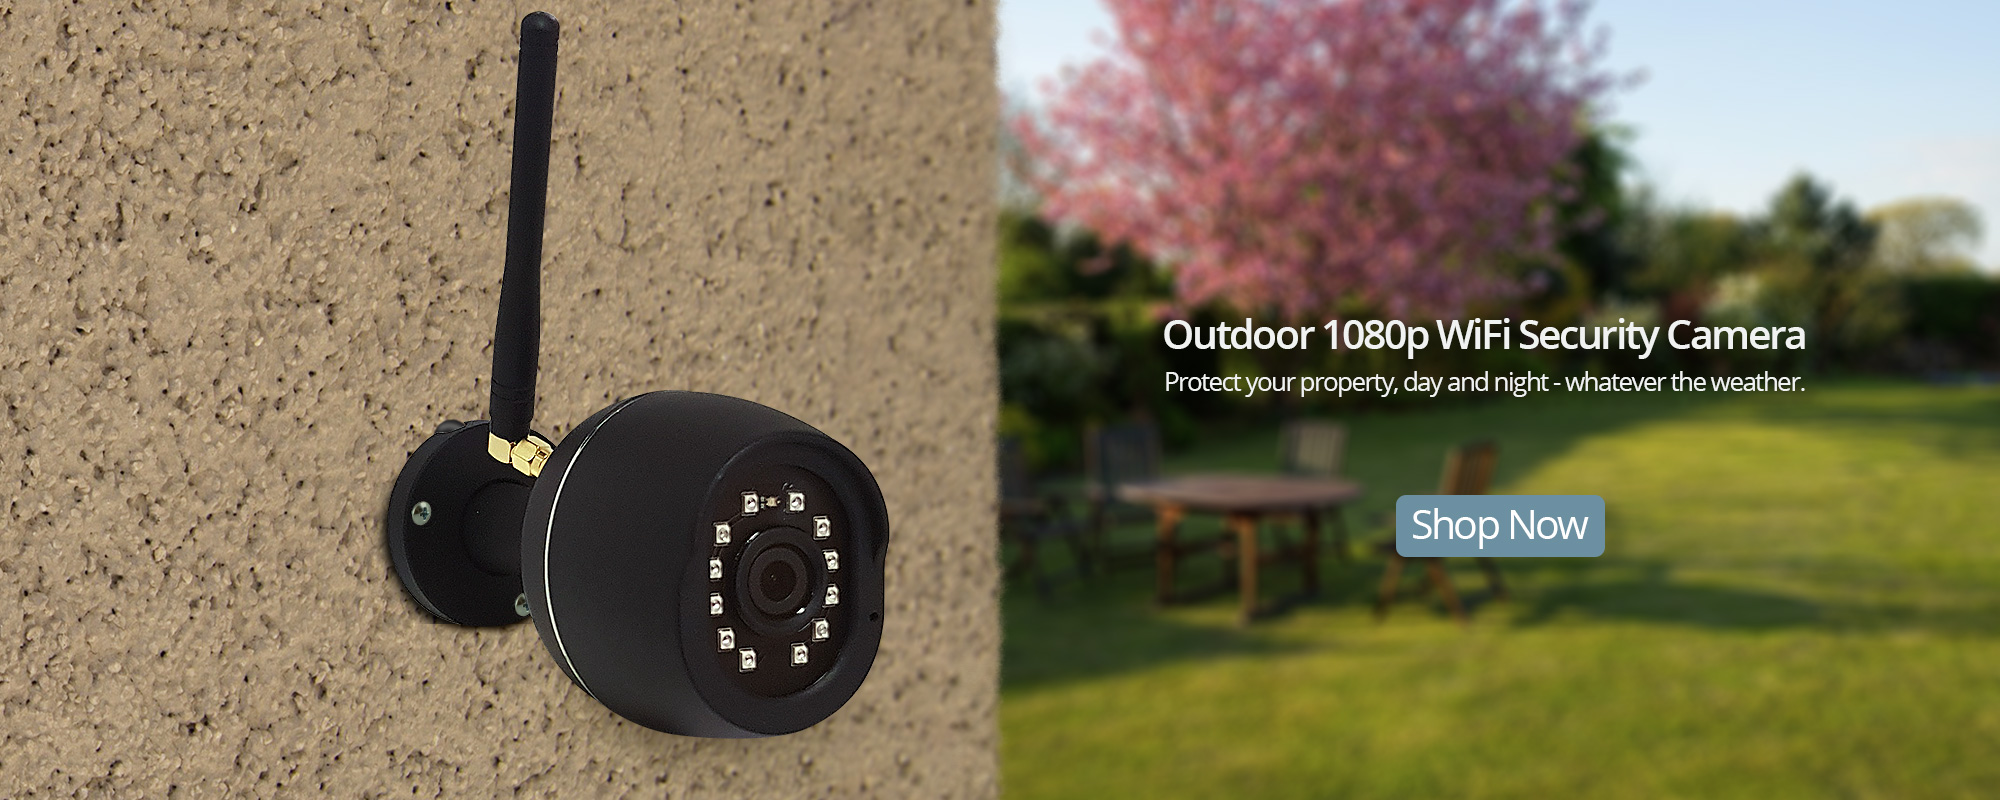 Outdoor WiFi 1080 Security Camera